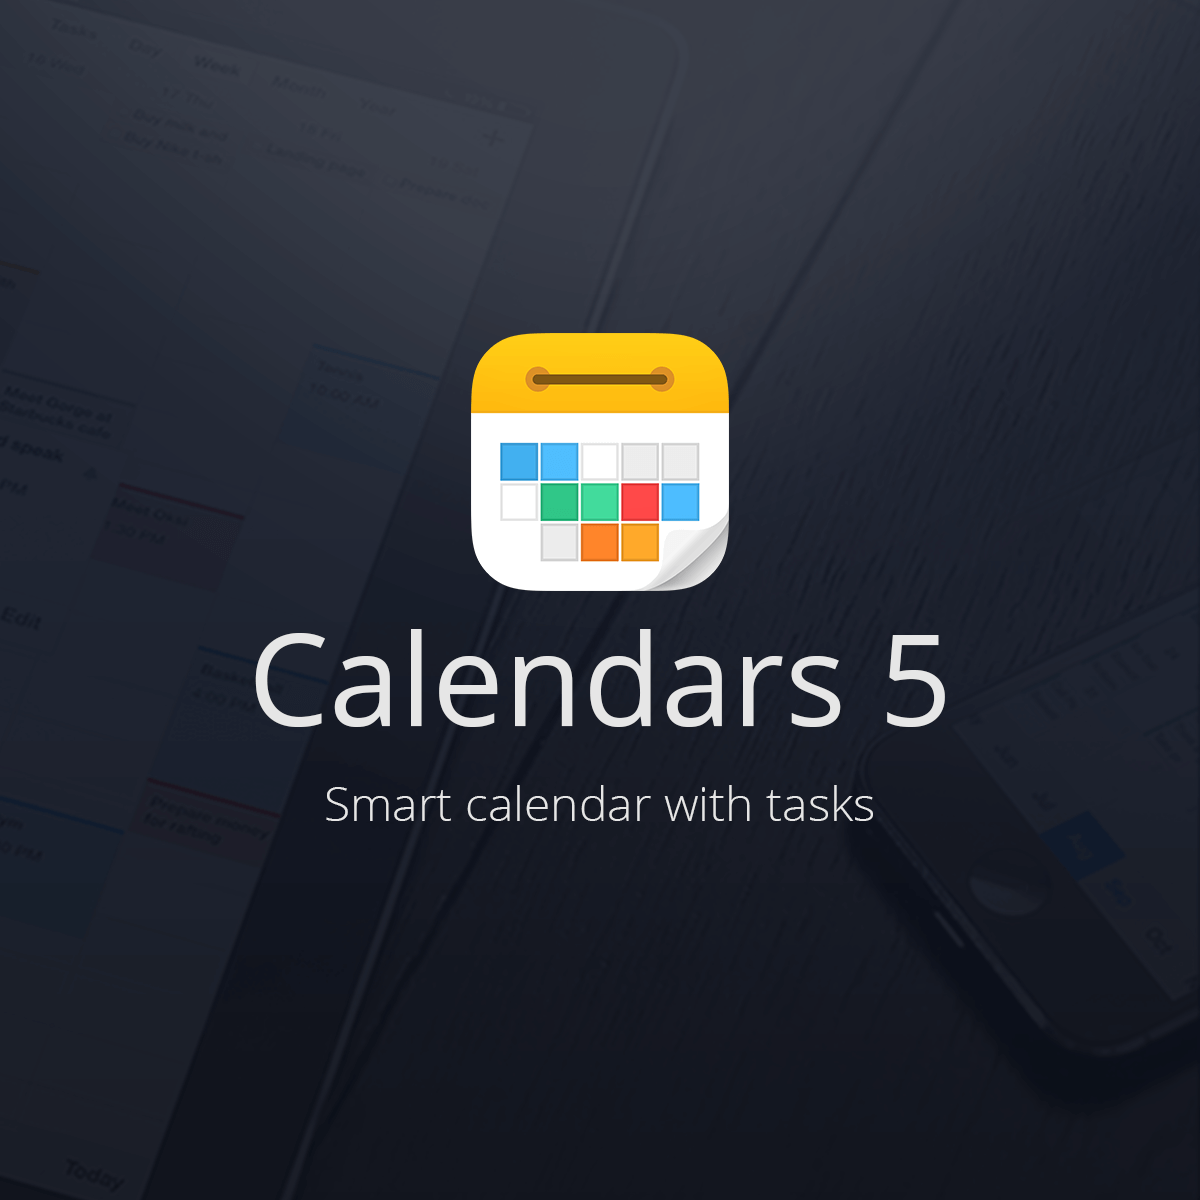 Calendario Con Frasi Del Giorno App.App Calendario E Promemoria Per Iphone E Ipad Calendars 5